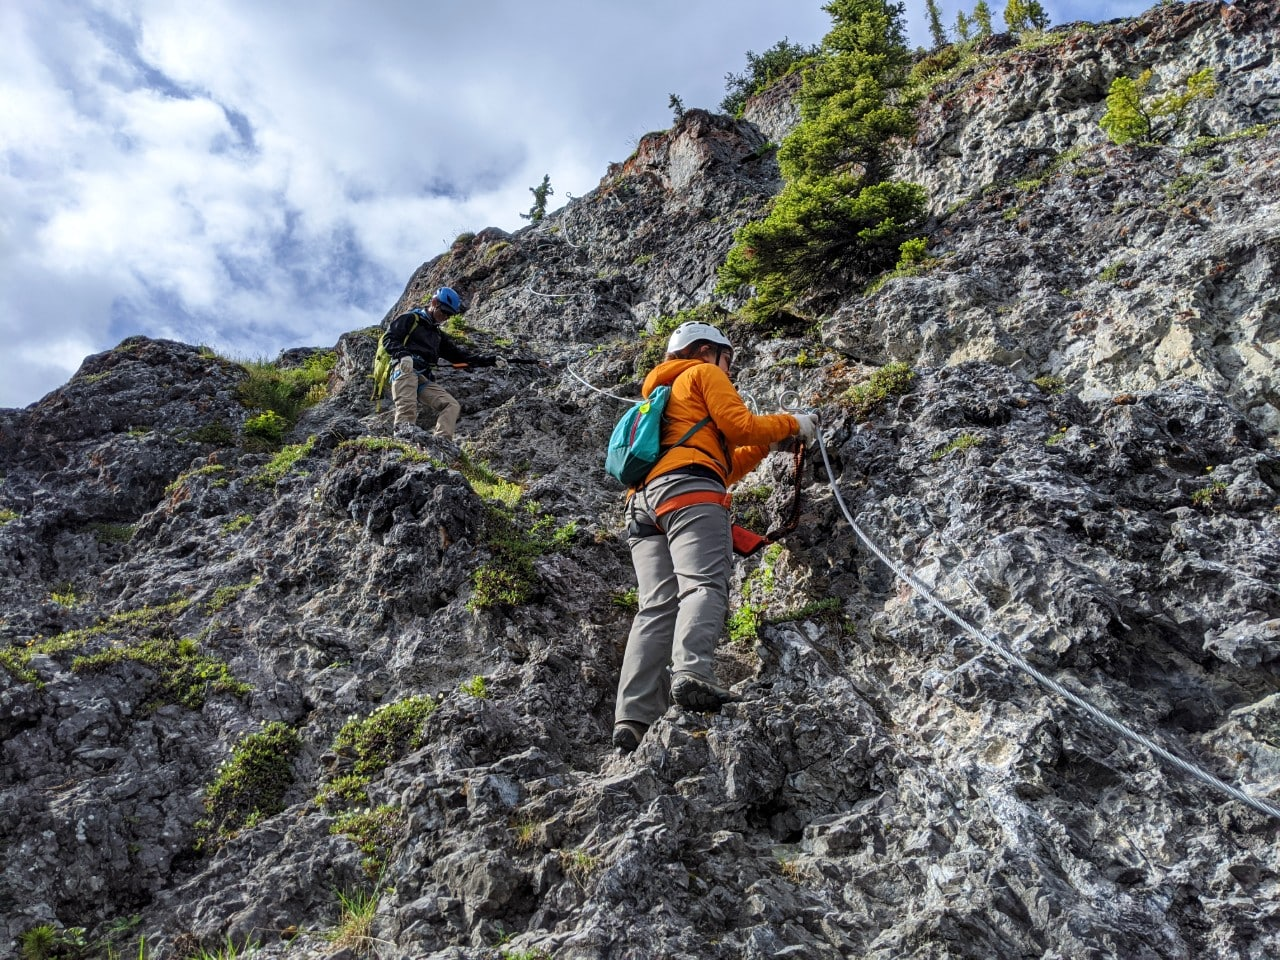 Gemma standing on rock connected to steel safety cable on Mt Norquay Via Ferrata in Banff